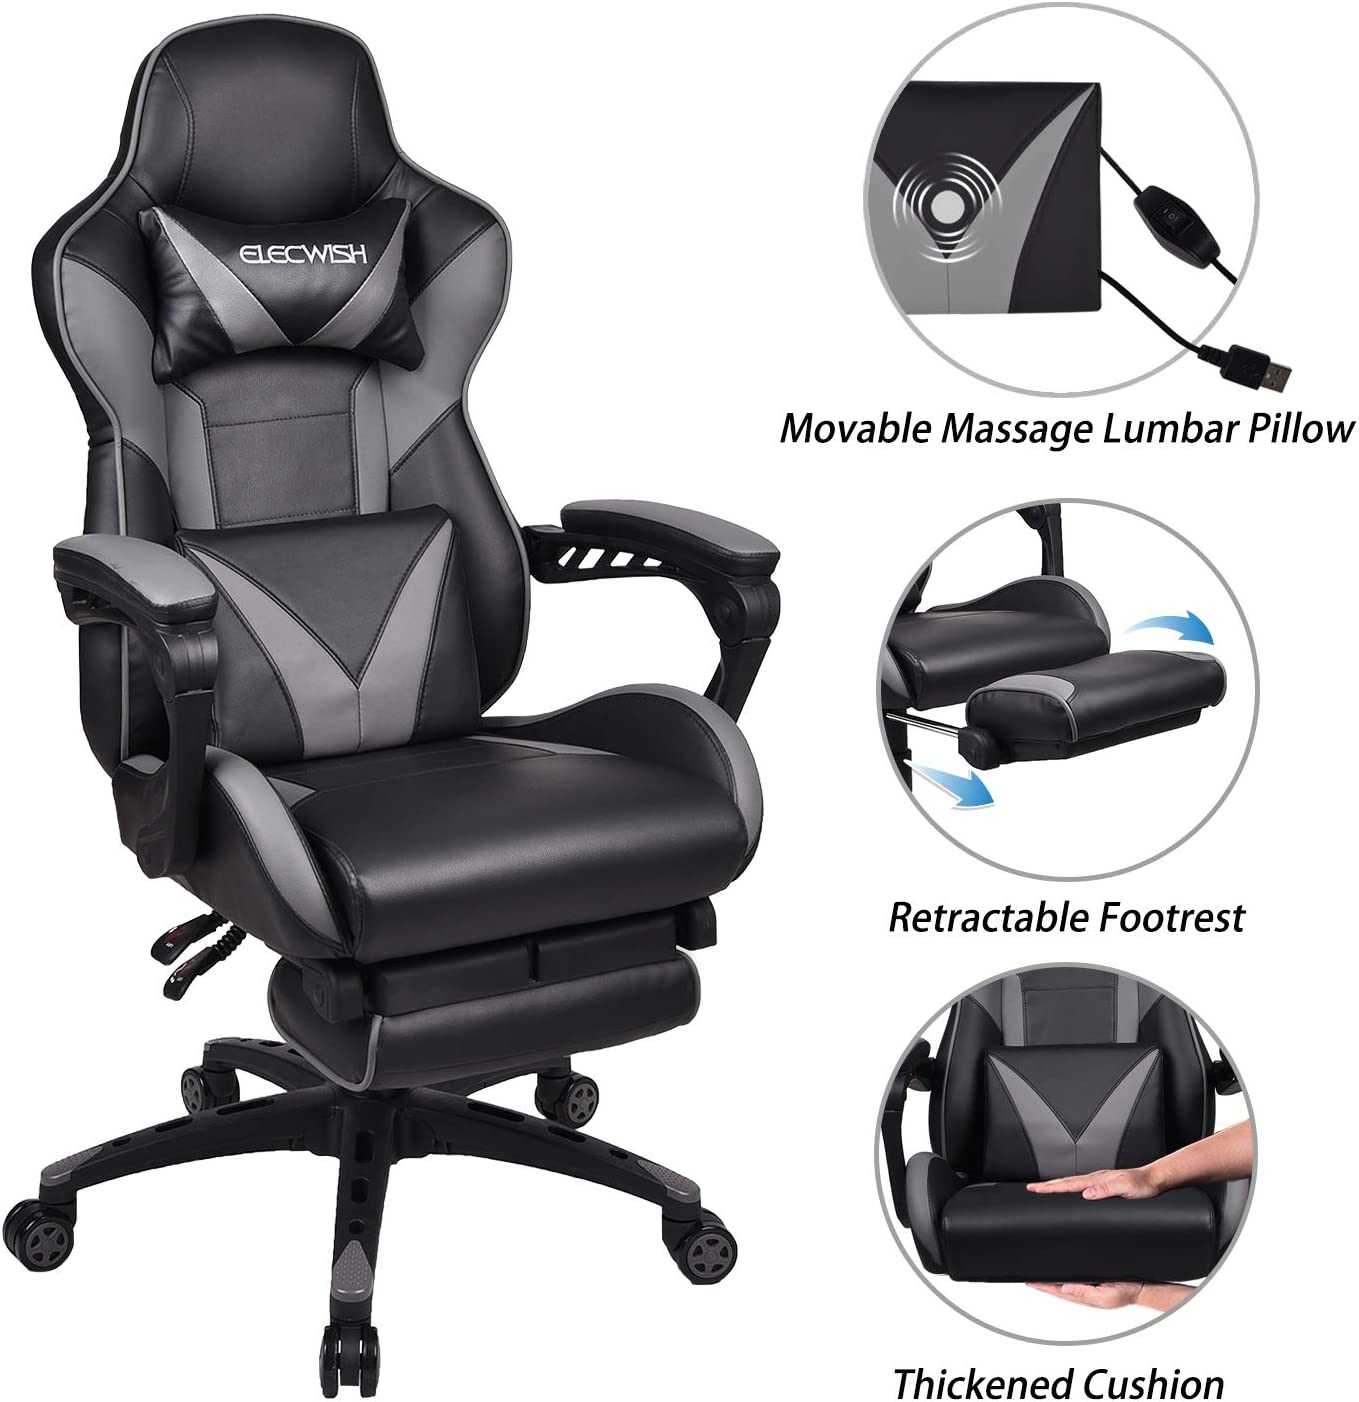 ELECWISH Massage Computer Gaming Chair Reclining Ergonomic Racing Office Chair with Footrest High Back PU Leather Gaming Desk Chair Large Size E-Sport Chair with Headrest and Lumba Support (Grey)